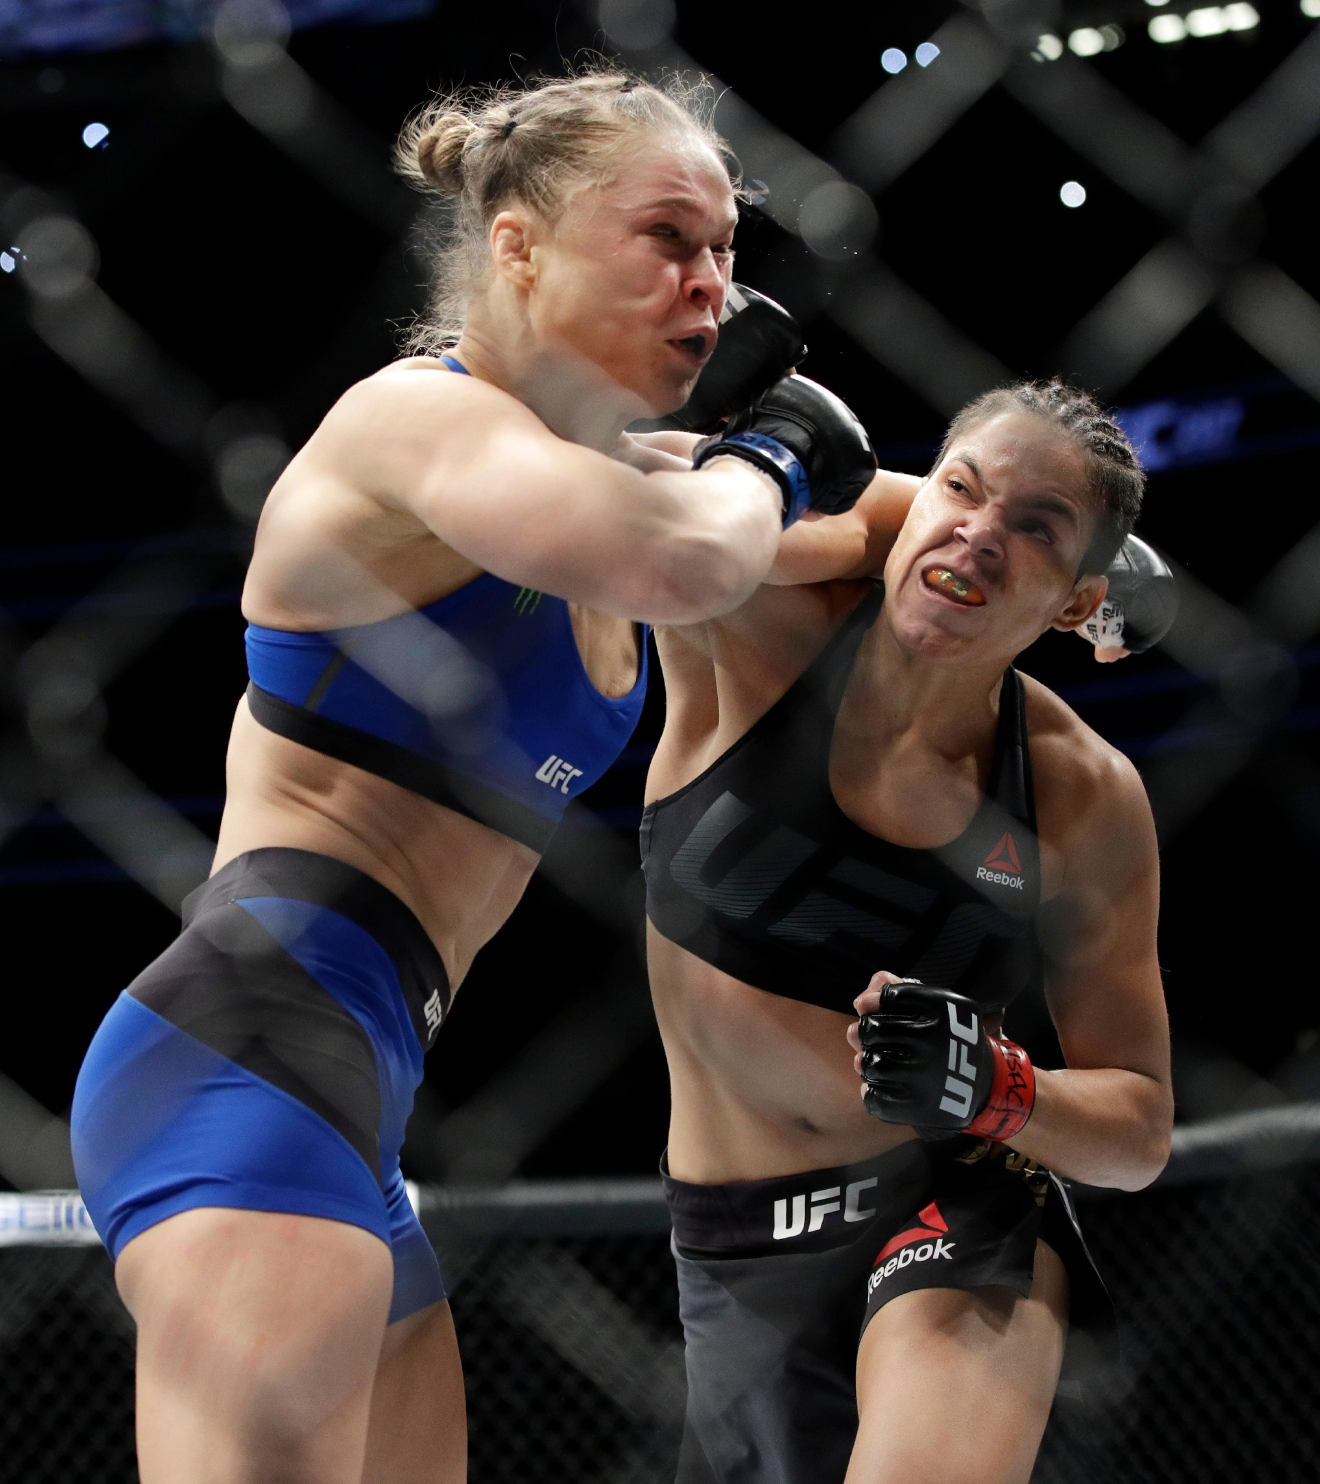 Amanda Nunes, right, connects with Ronda Rousey during the first round of their women's bantamweight championship mixed martial arts bout at UFC 207, Friday, Dec. 30, 2016, in Las Vegas. Nunes won the fight after it was stopped in the first round. (AP Photo/John Locher)